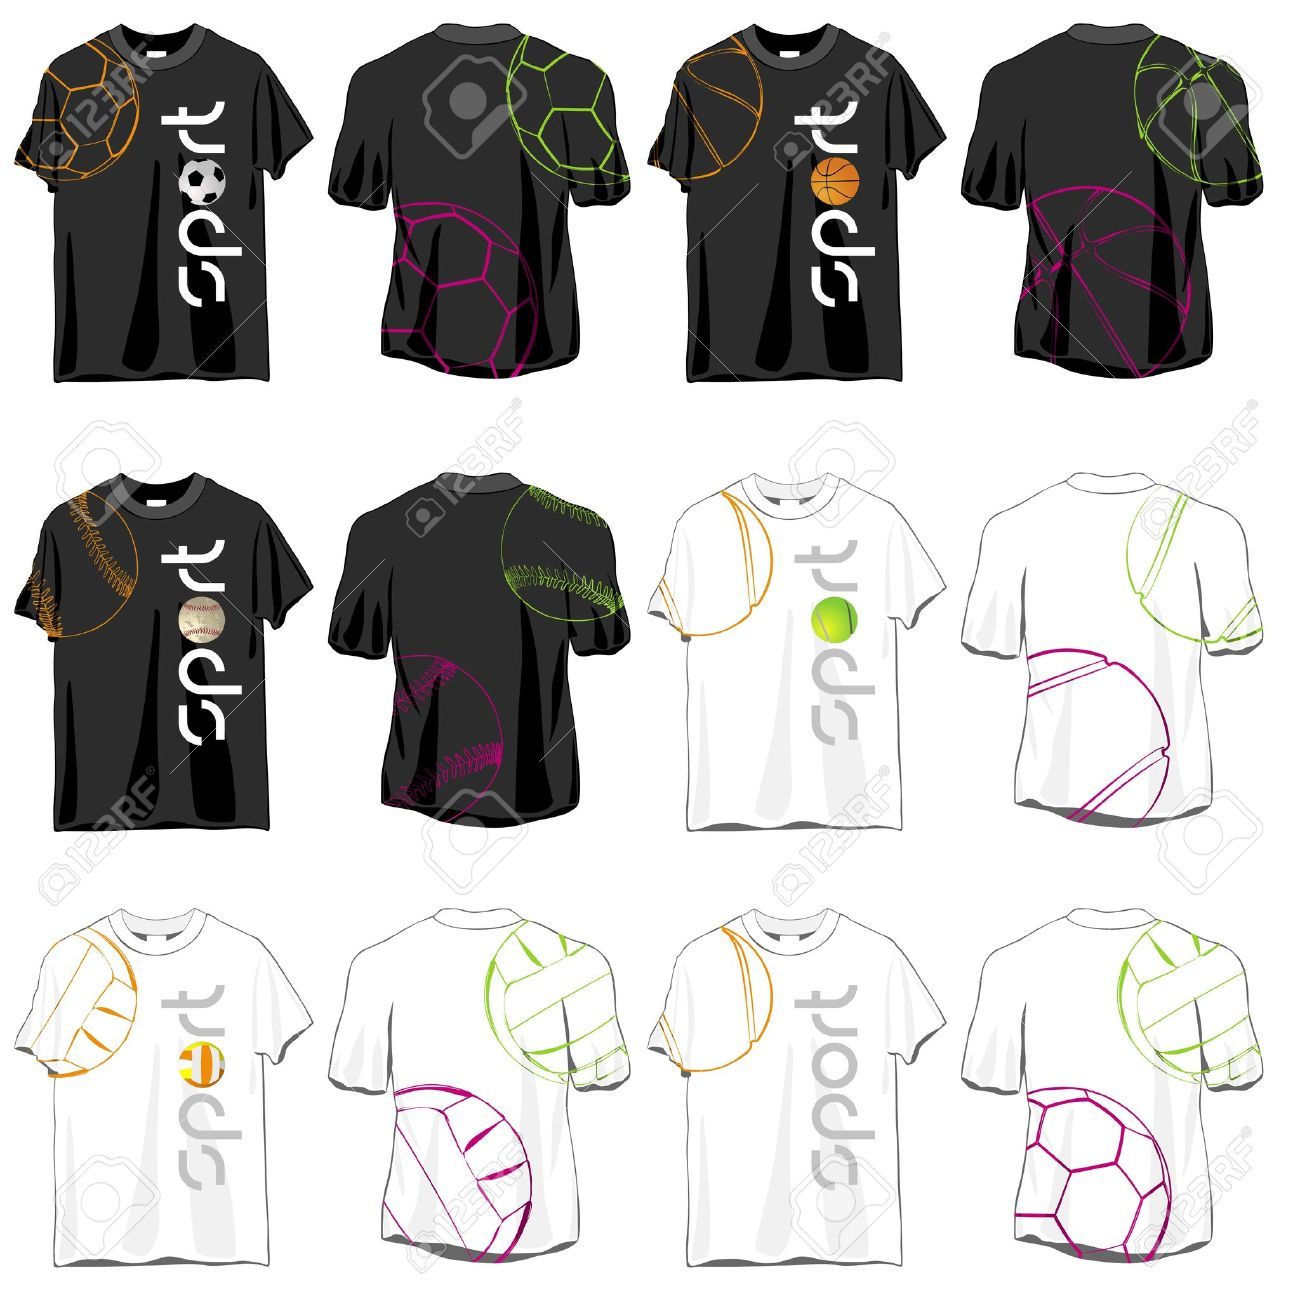 Volleyball T Shirt Design Ideas t shirt design design 570587 submitted to volleyball club t shirt design Vector Sport T Shirts Designs Set